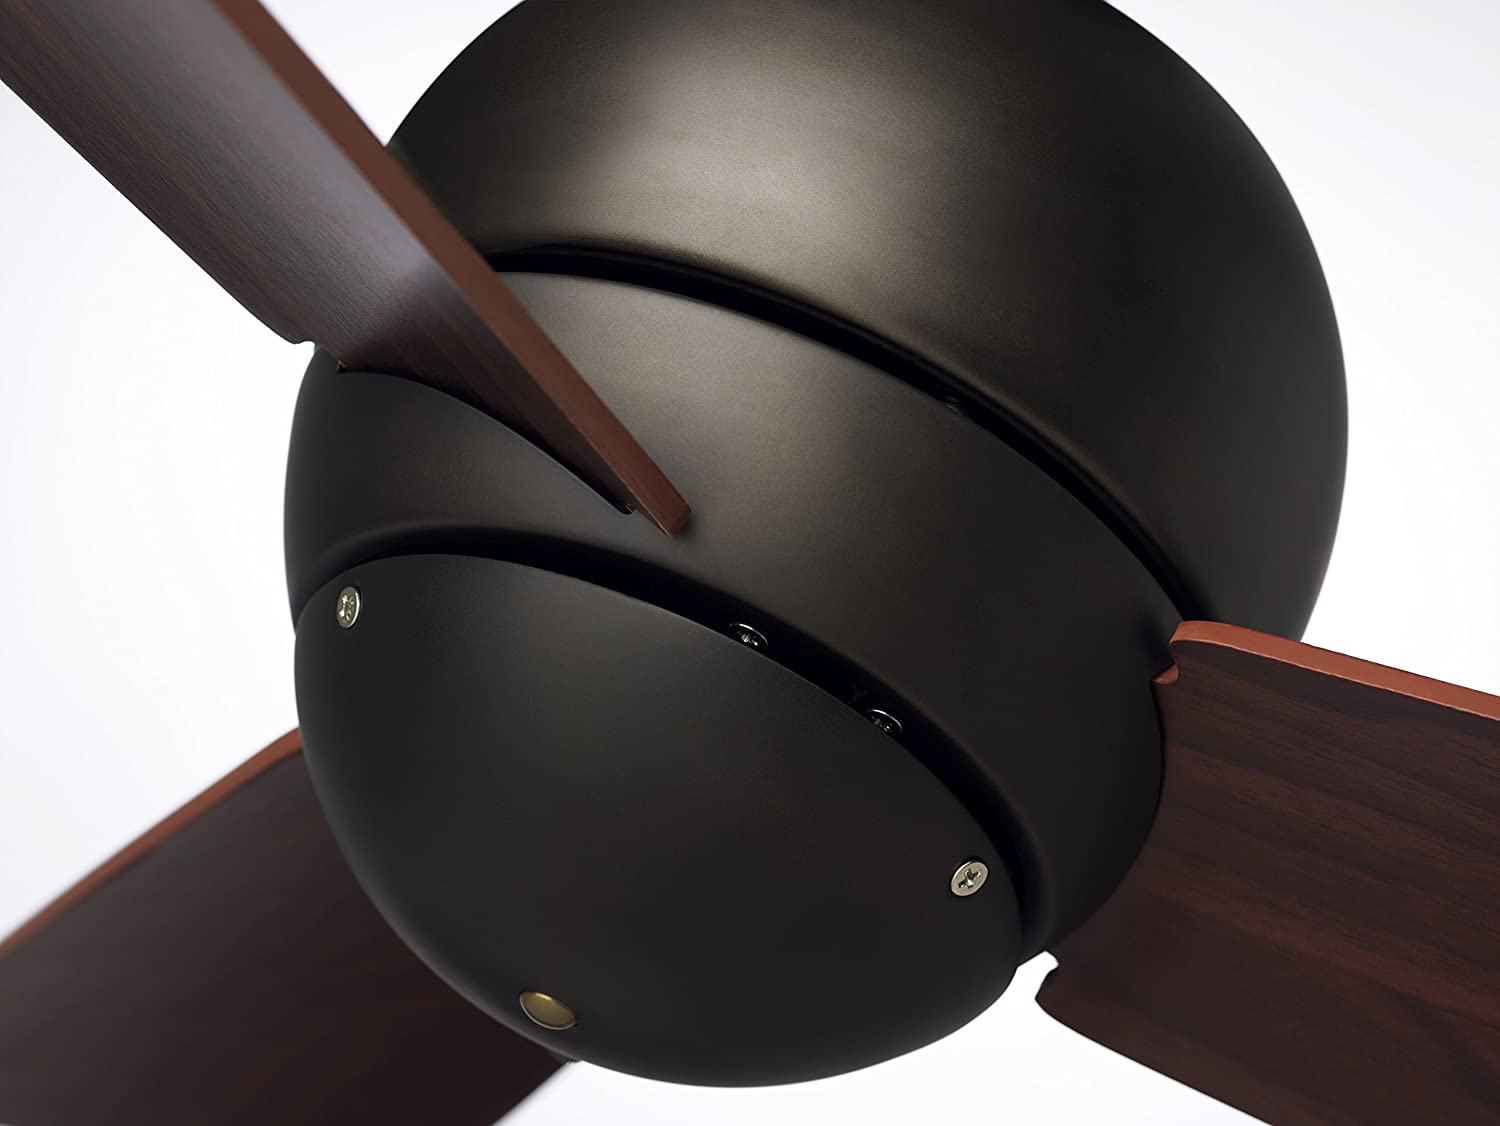 Emerson Ceiling Fans CF130ORB Tilo Modern Low Profile Hugger Indoor Outdoor Ceiling Fan, Damp Rated, 30-Inch Blades, Light Kit Adaptable, Oil Rubbed Bronze Finish